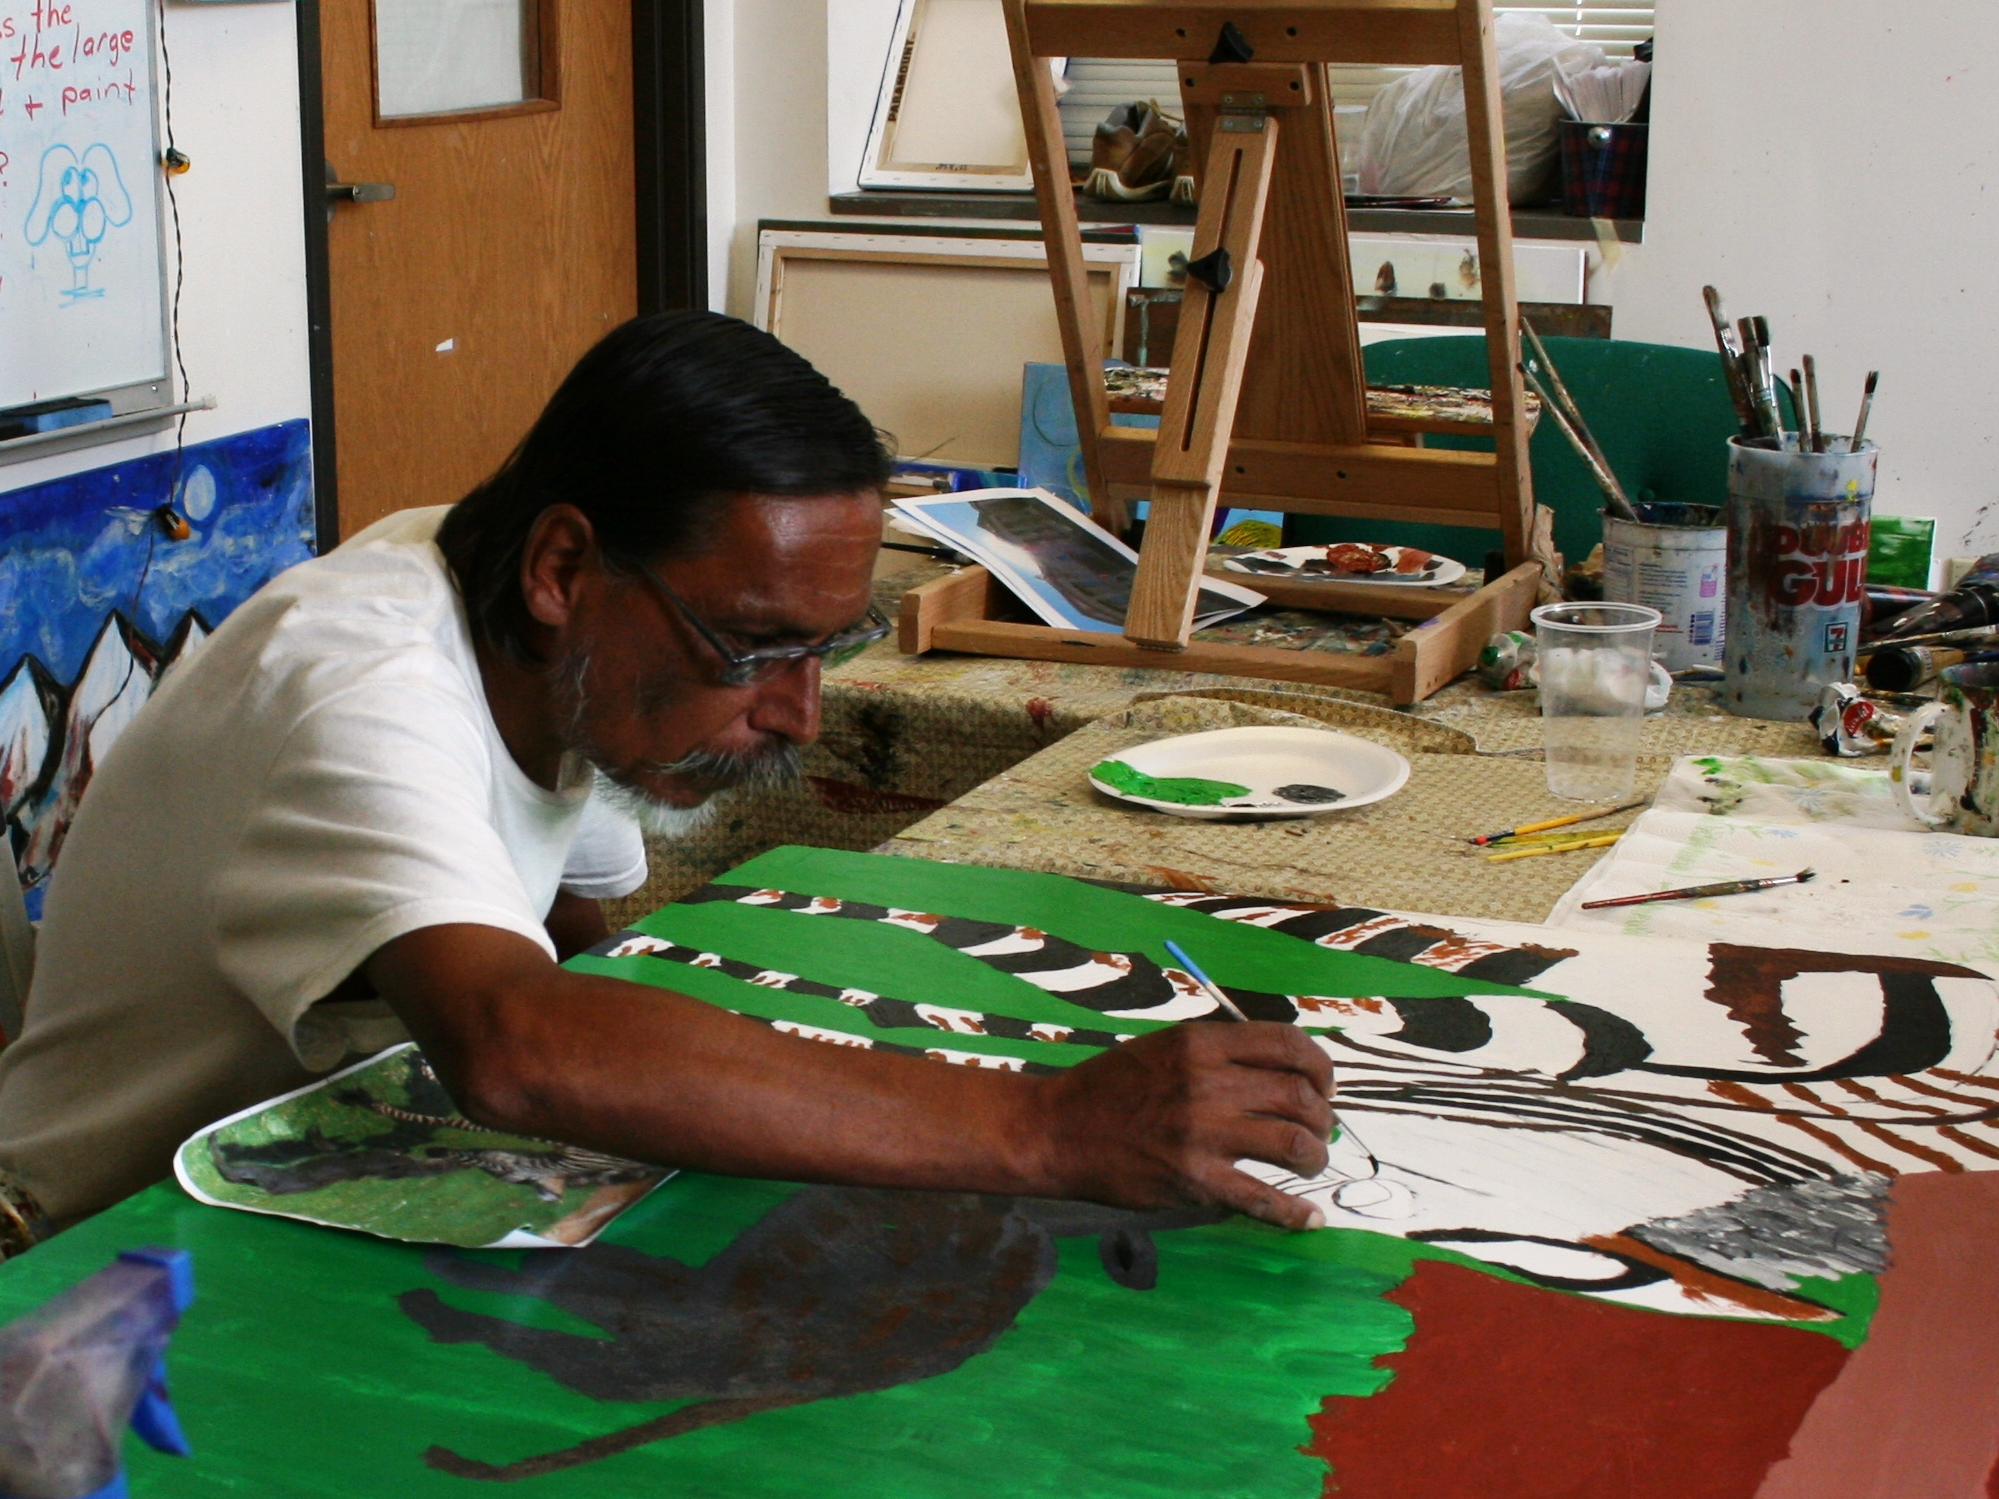 Luis Arispe at work in the Open Art Studio.